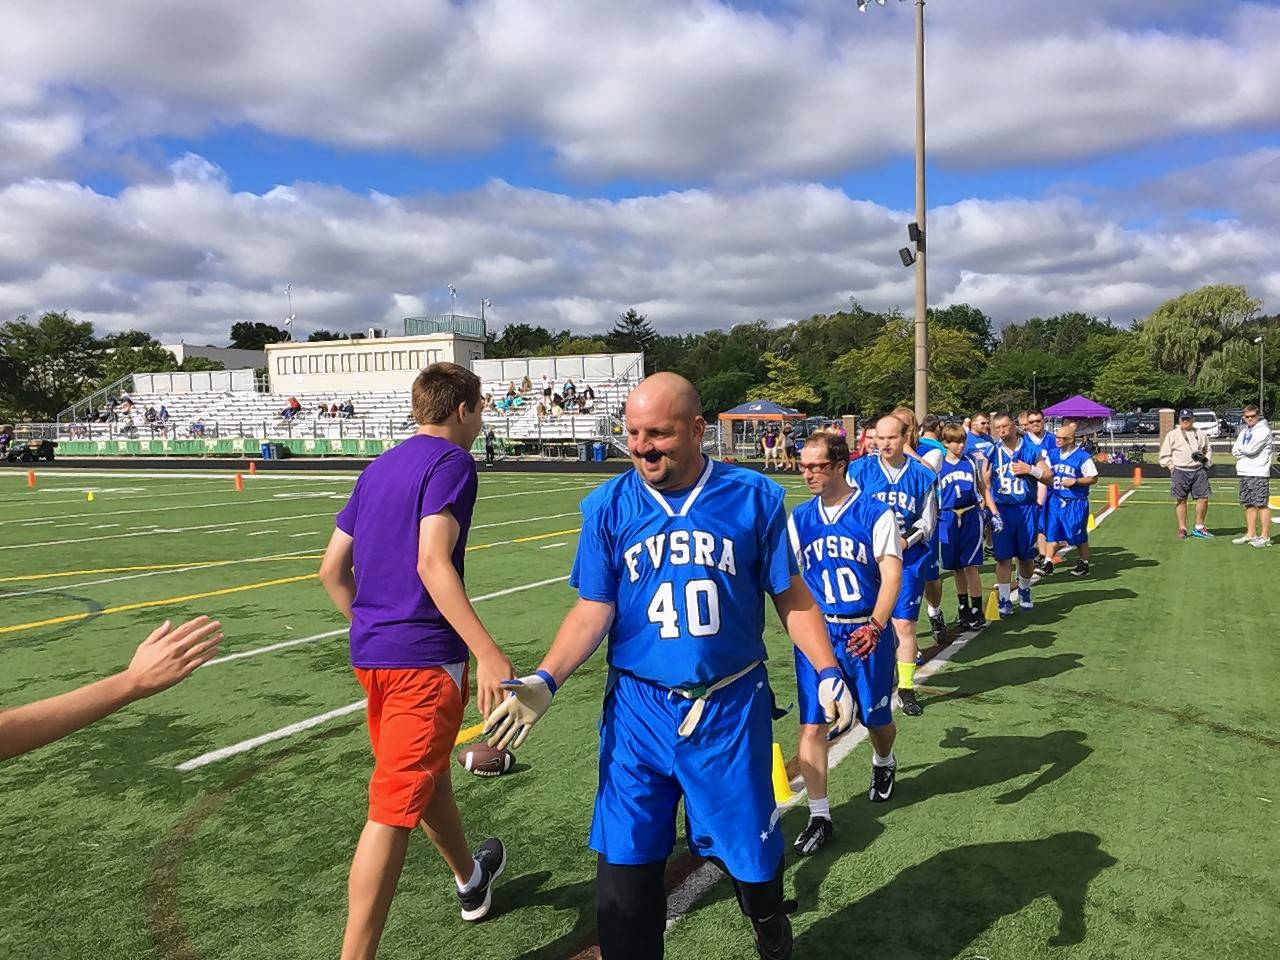 Members of the Fox Valley Special Recreation Association, including Douglas Burson (40) and David Colby (10), shake hands with opponents from the DuPage Valley Special Athletes during the Special Olympics of Illinois flag football tournament Sunday at Stevenson High School in Lincolnshire.